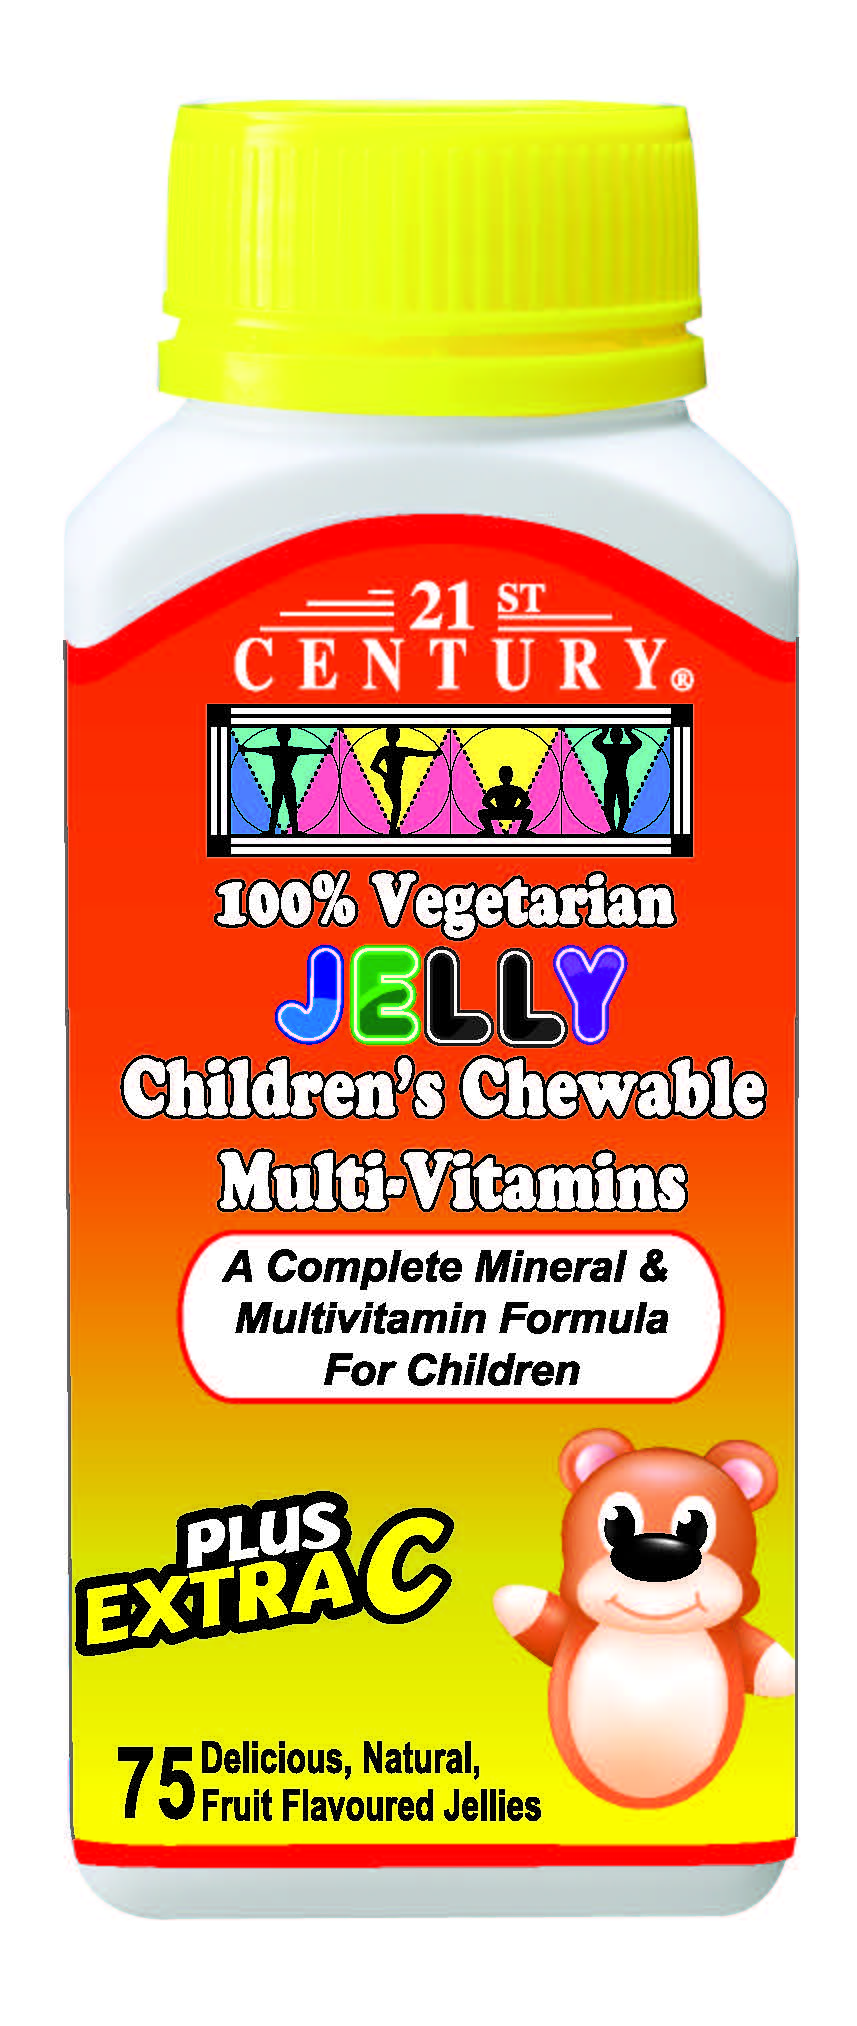 Children's Chewable Multi-Vitamins Vegetarian Jellies